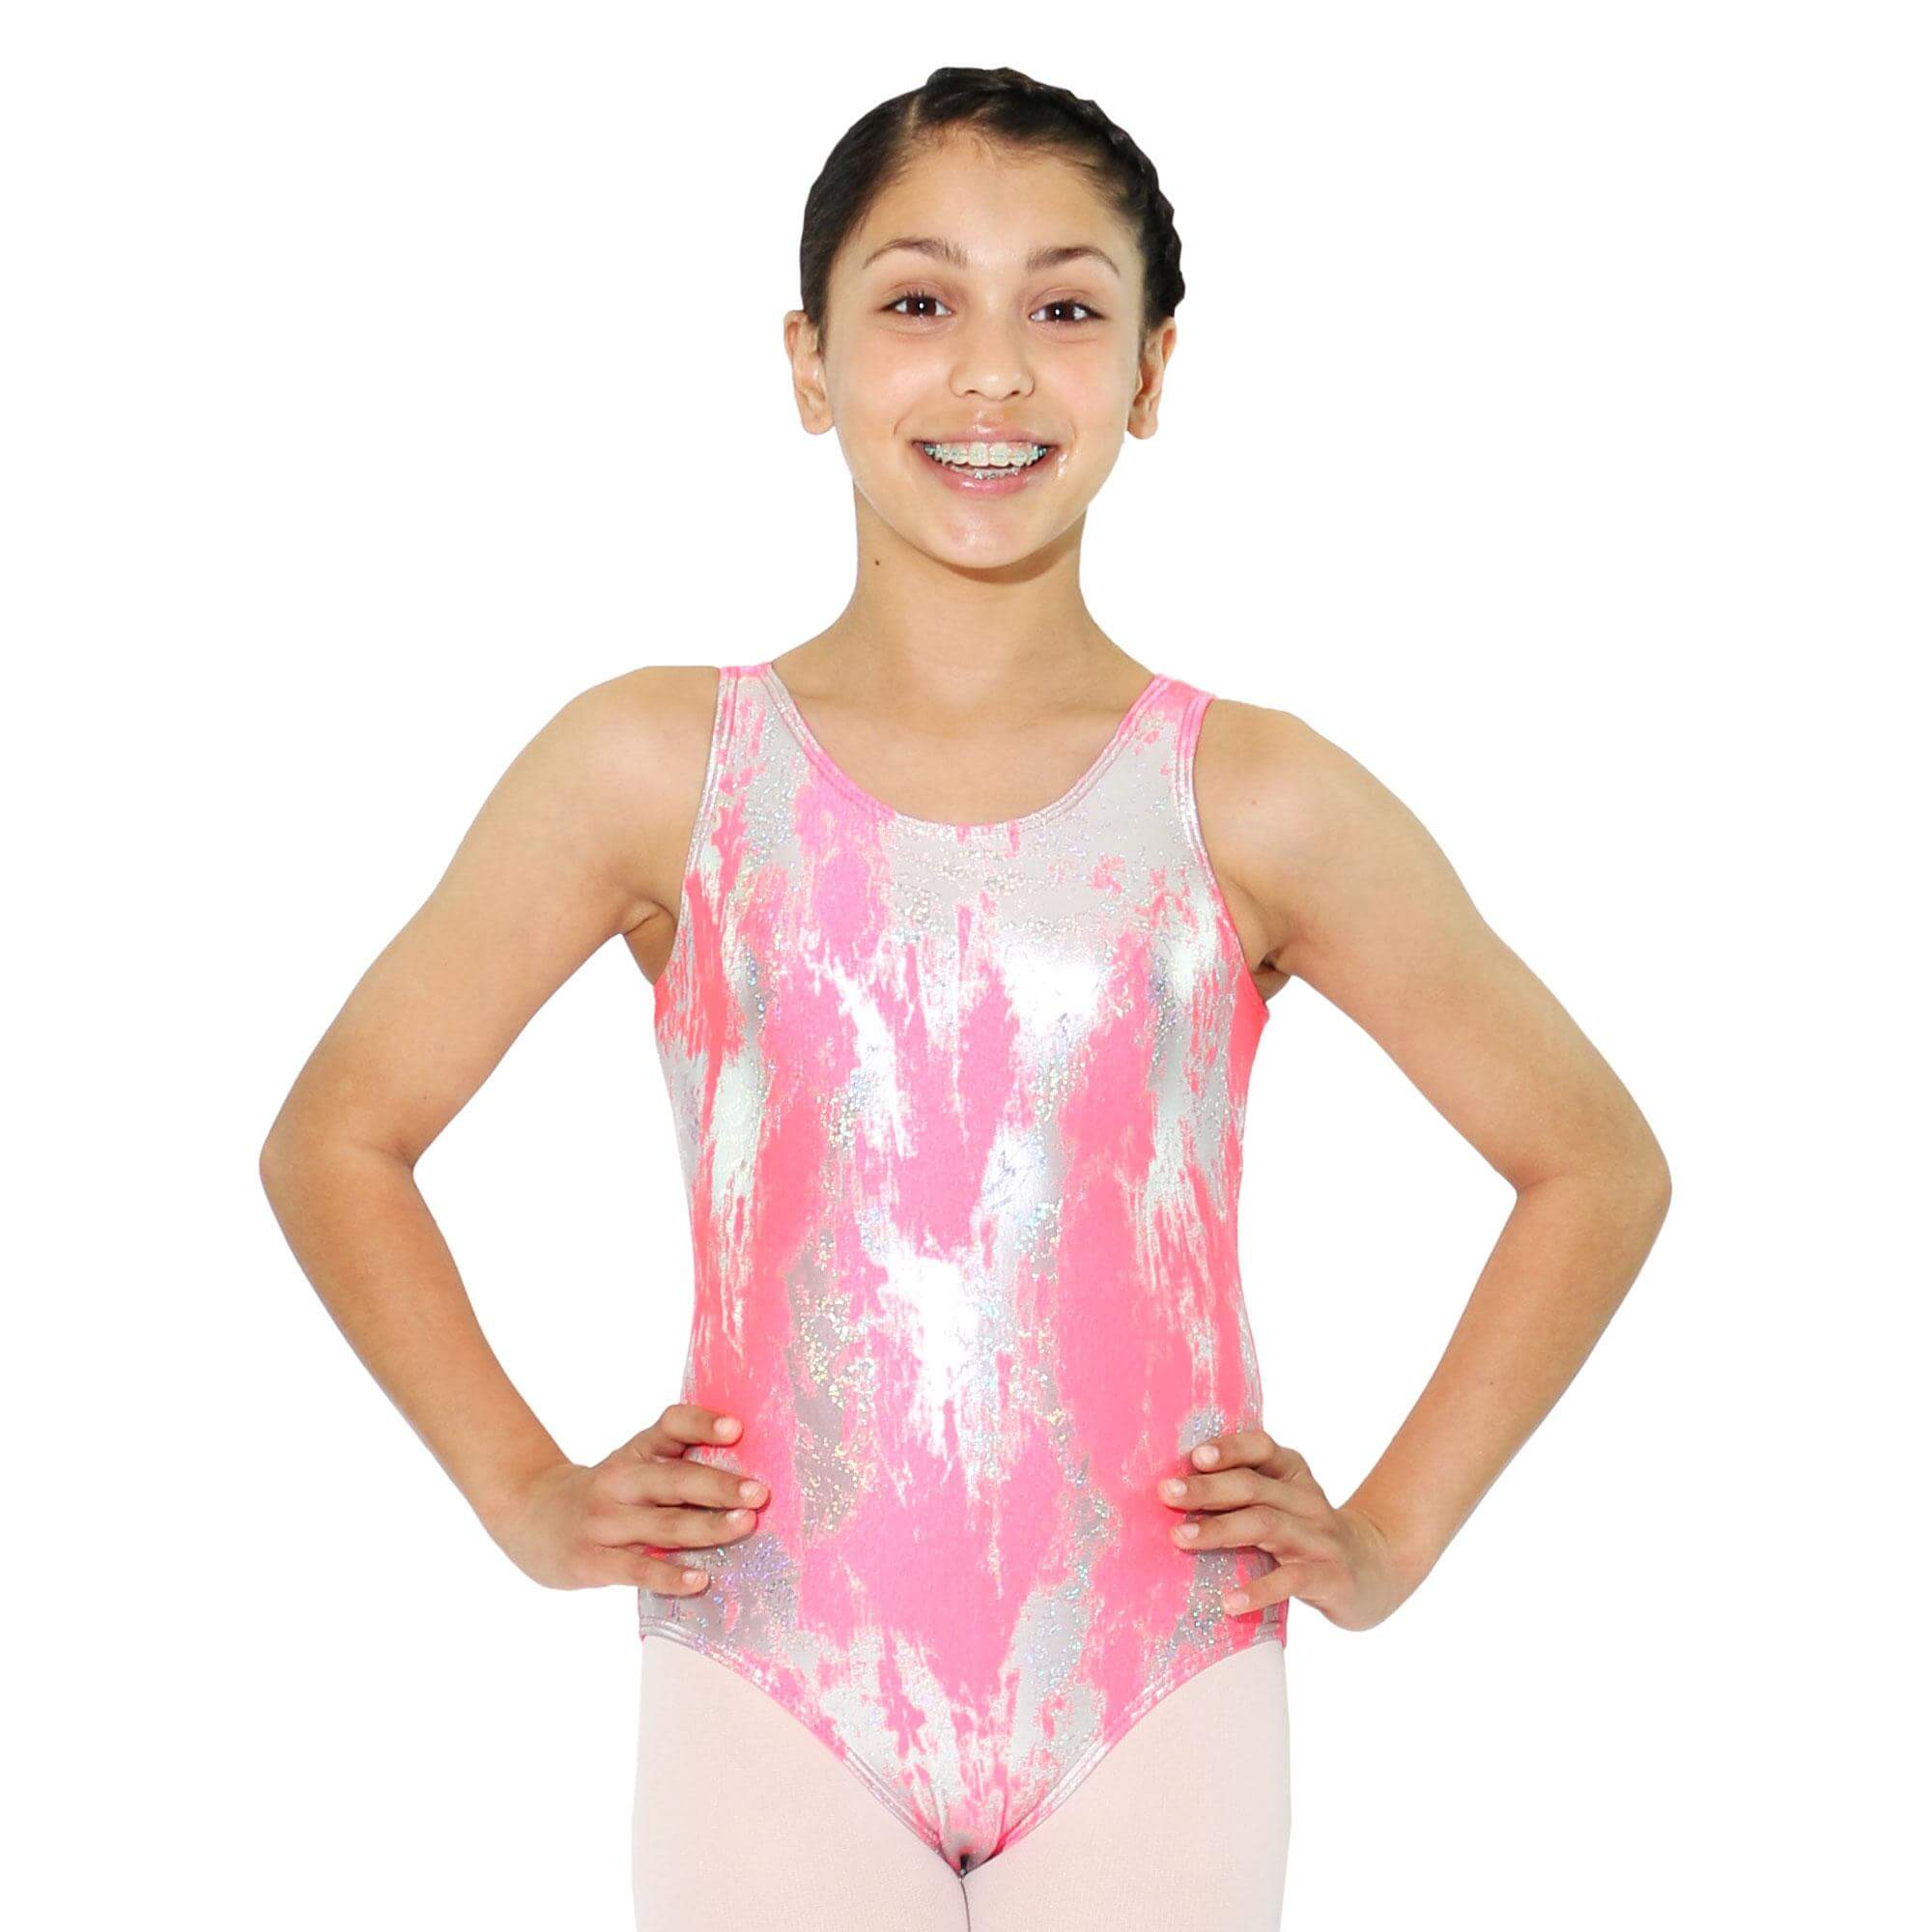 Reflectionz Metallic Splatter Leotard